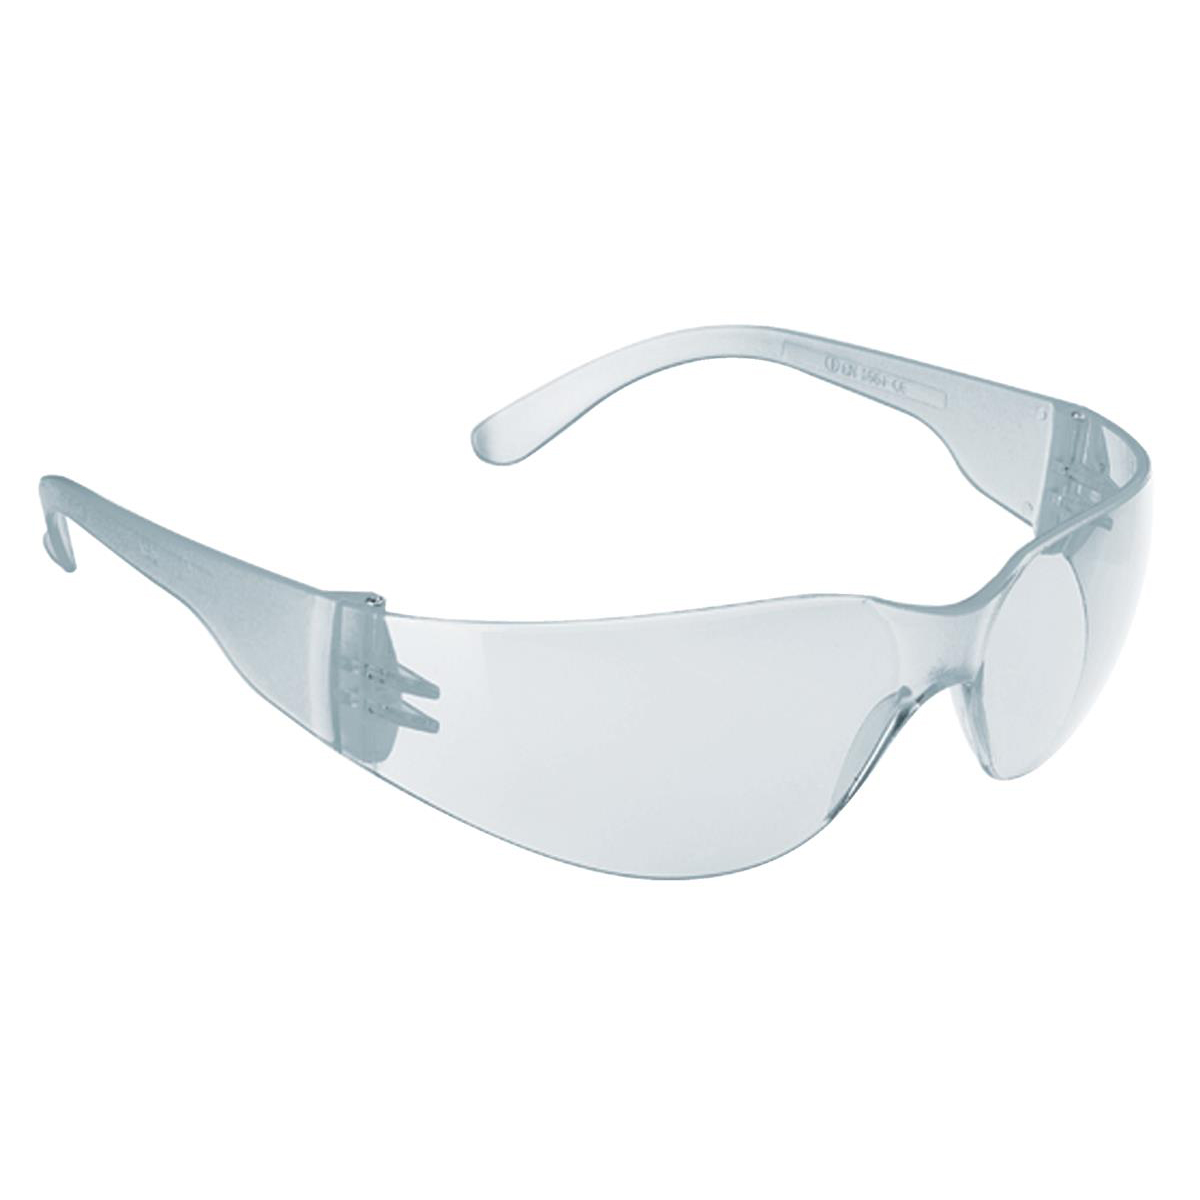 JSP Stealth 7000 Safety Spectacles Anti Mist N Rated Clear Ref ASA430-151-30